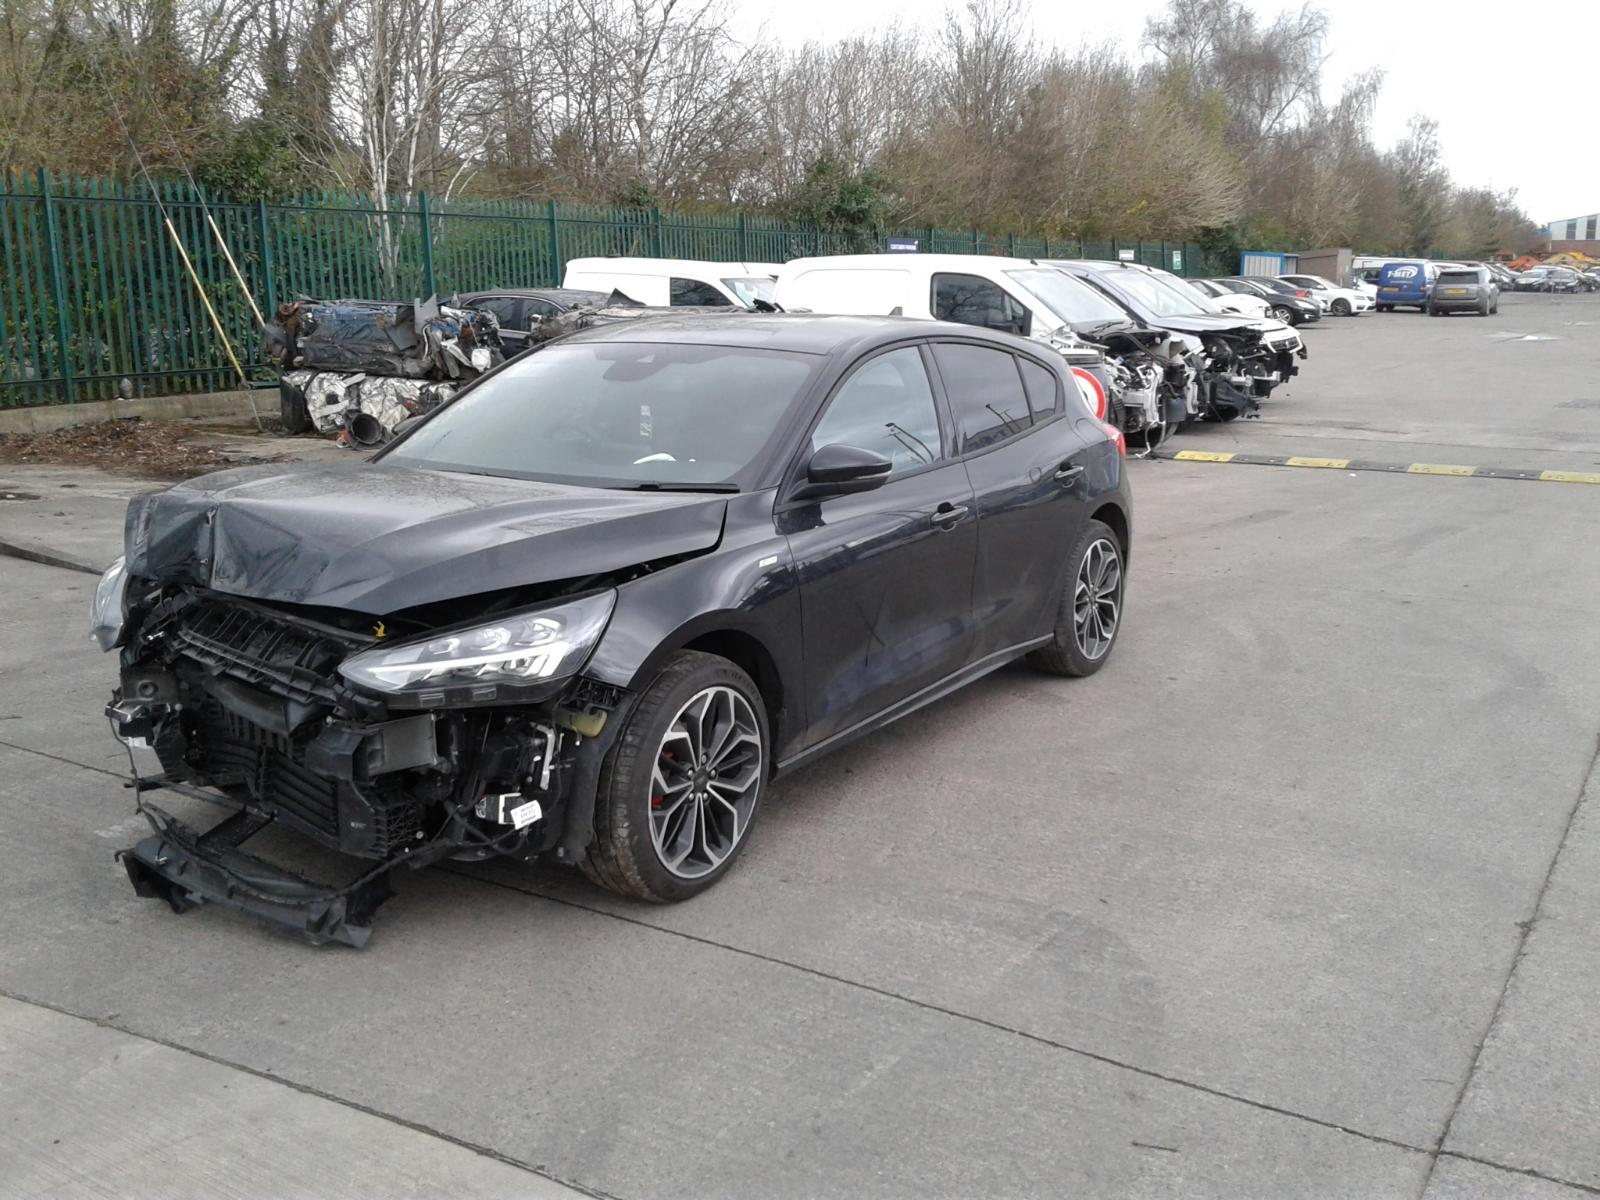 2021 FORD FOCUS ST-LINE X AUTOMATIC TDCI FOR SALE £10,750 ONO Image